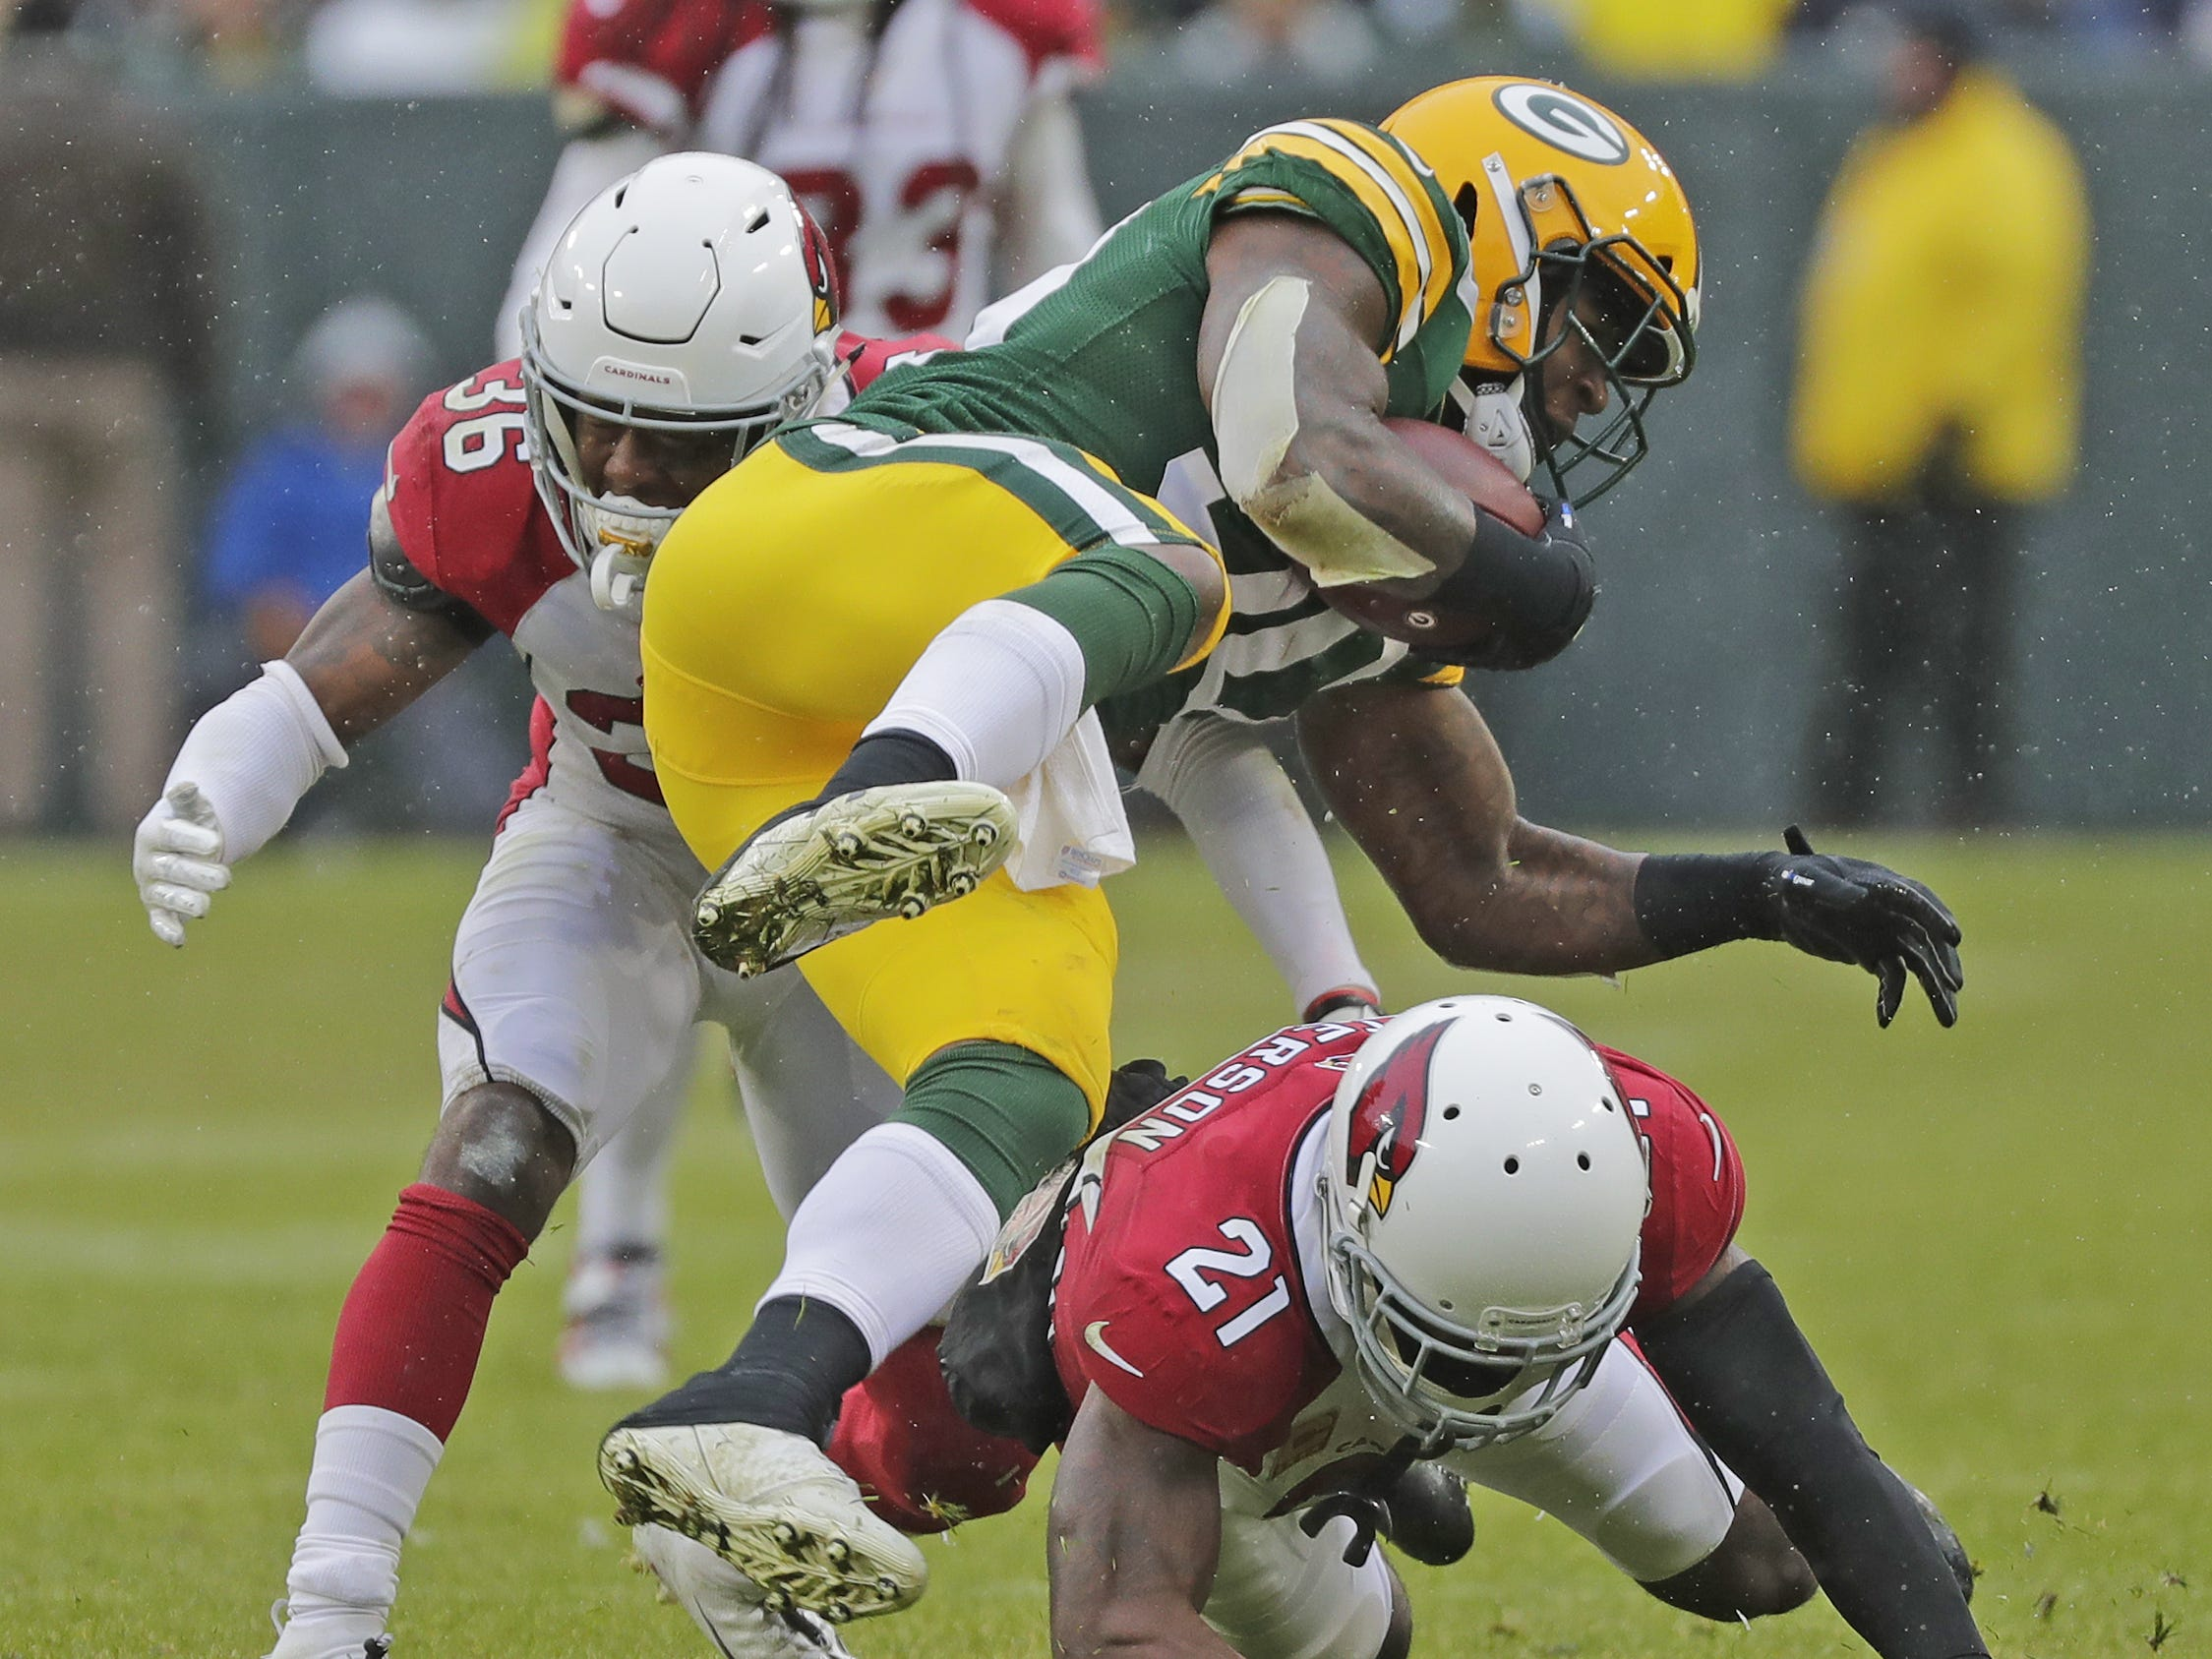 Arizona Cardinals cornerback Patrick Peterson (21) tackles Green Bay Packers running back Jamaal Williams (30) in the third quarter at Lambeau Field on Sunday, December 2, 2018 in Green Bay, Wis.